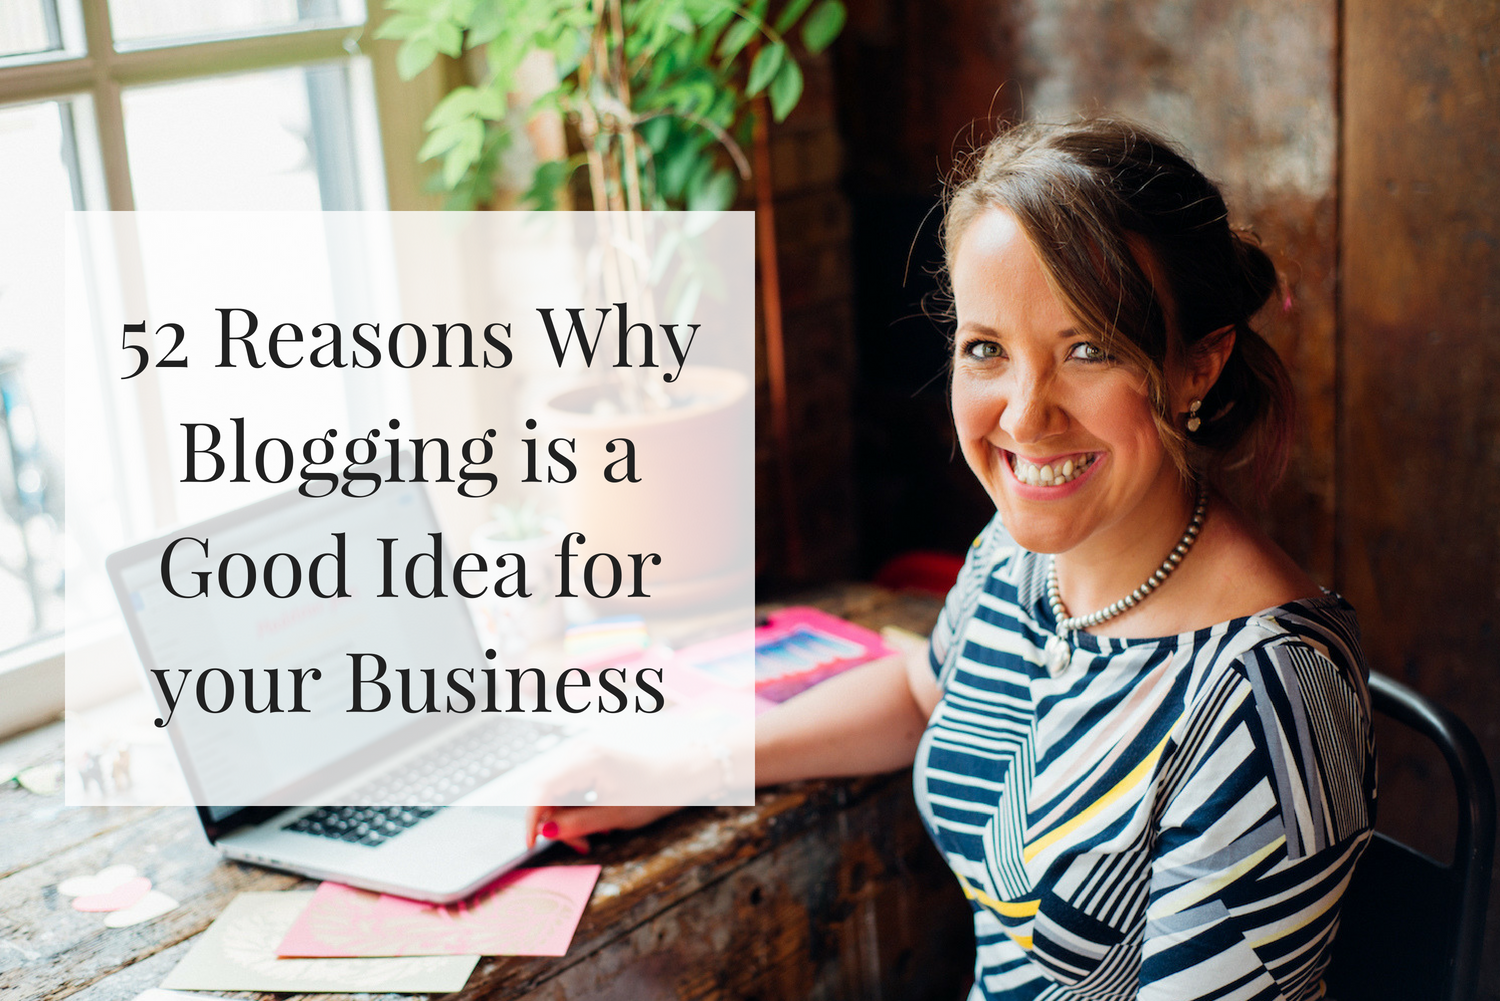 Why is blogging a good idea? Here's 52 reasons why